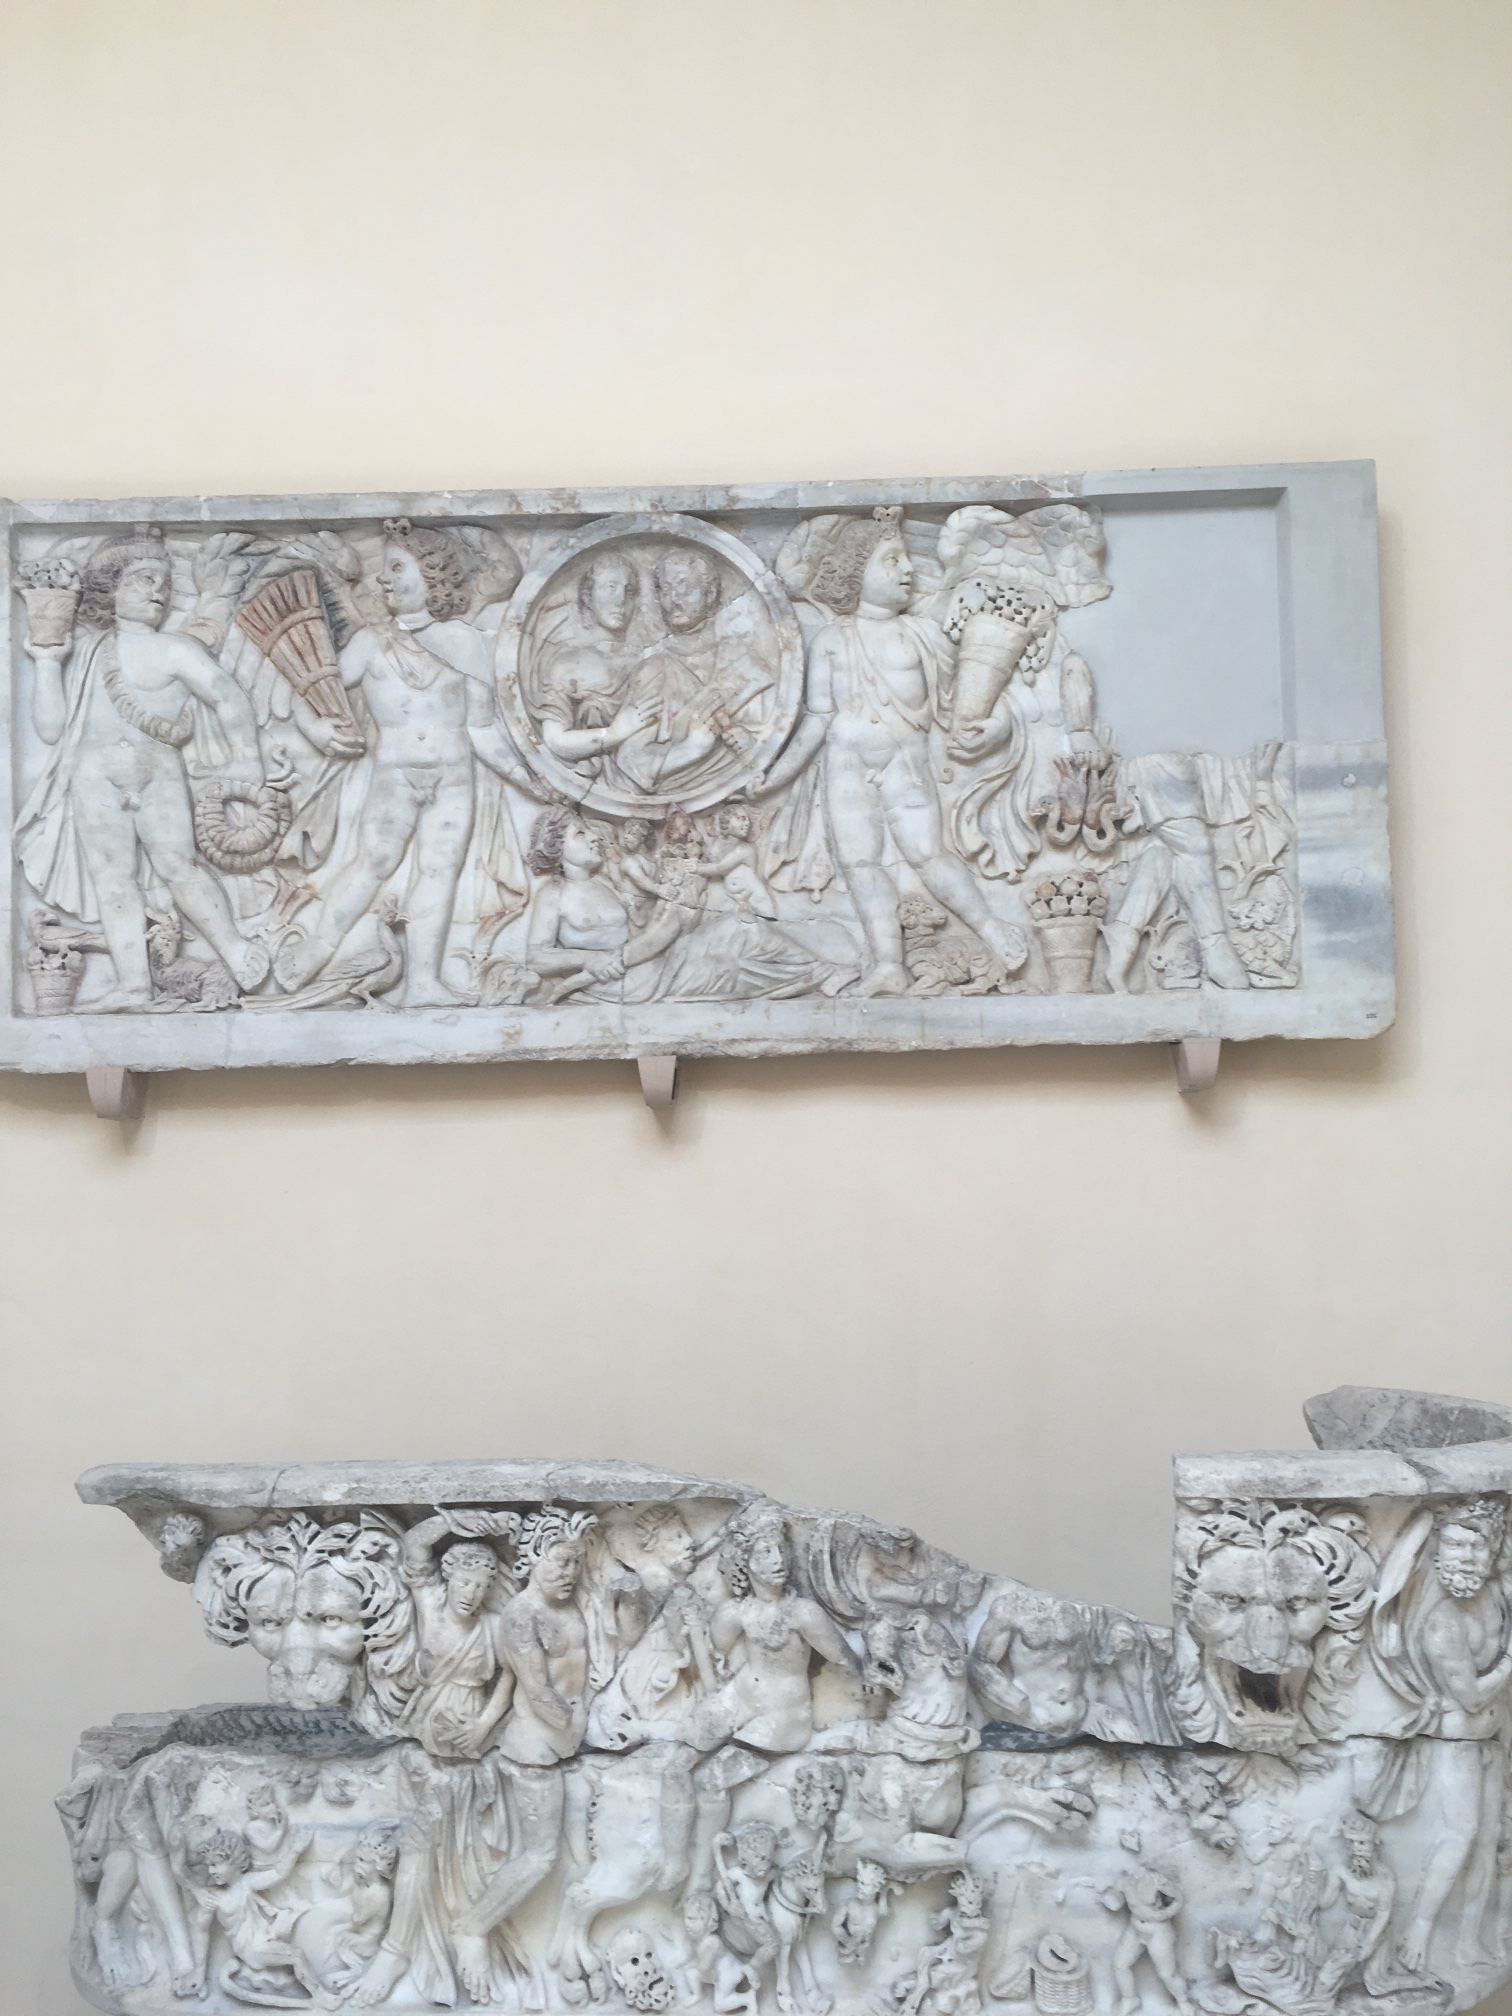 Sarcophagi and death sculptures hung in the museum. The museum is free to enter and is filled with random statues and frescoes, the archaeologists are always uncovering something.